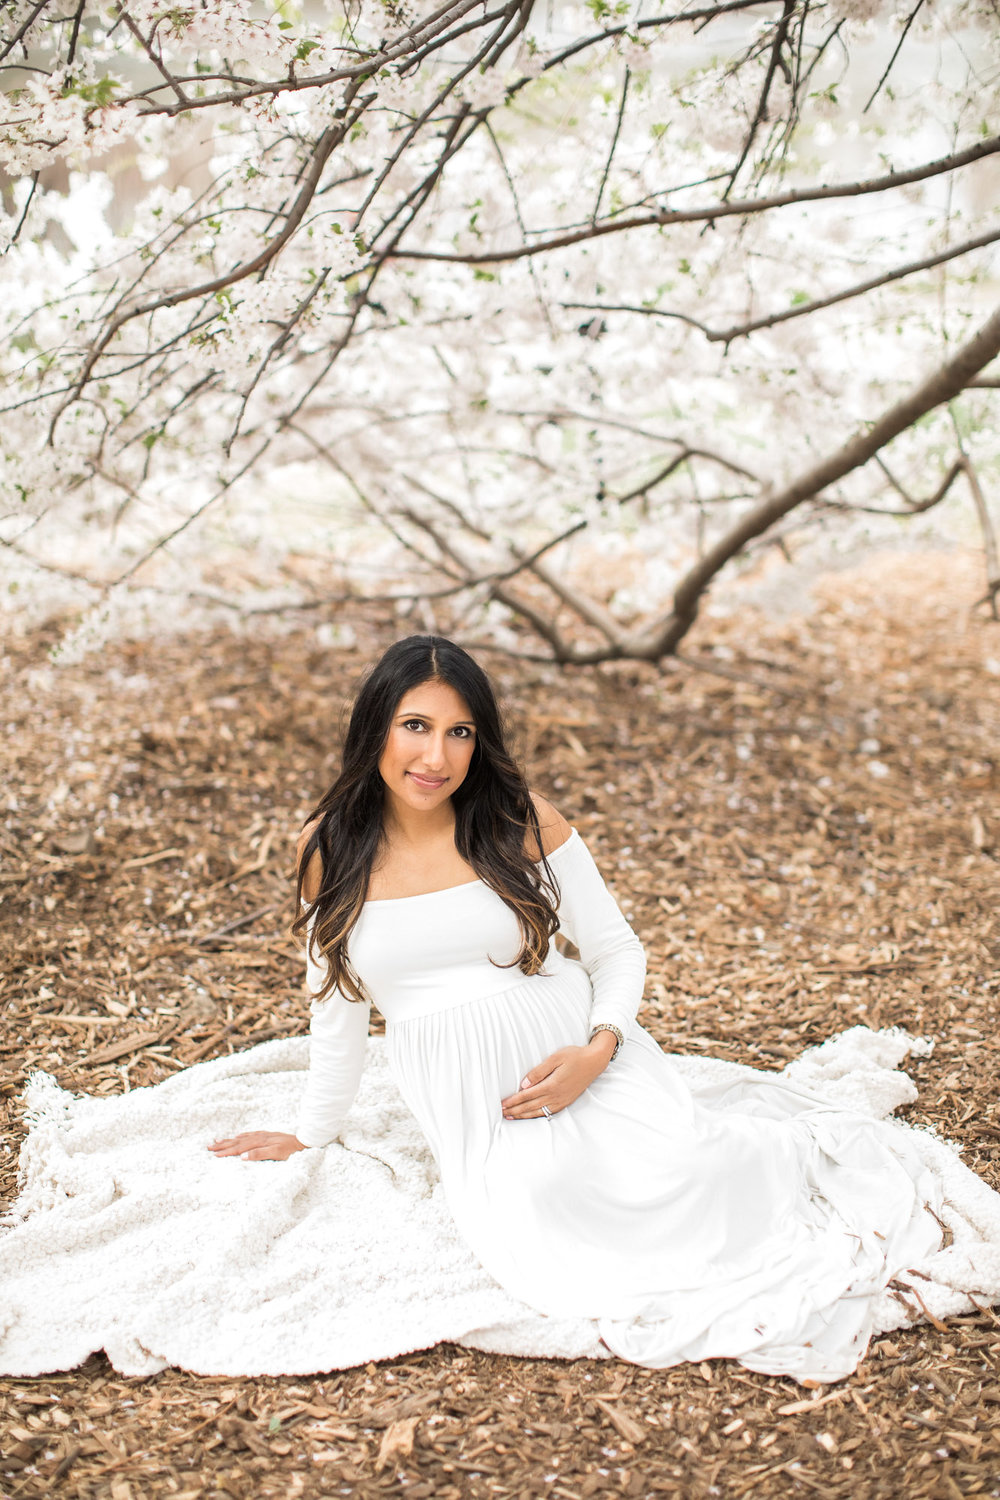 Maternity portraits in Central Park NYC among the cherry blossoms of beautiful Indian mama